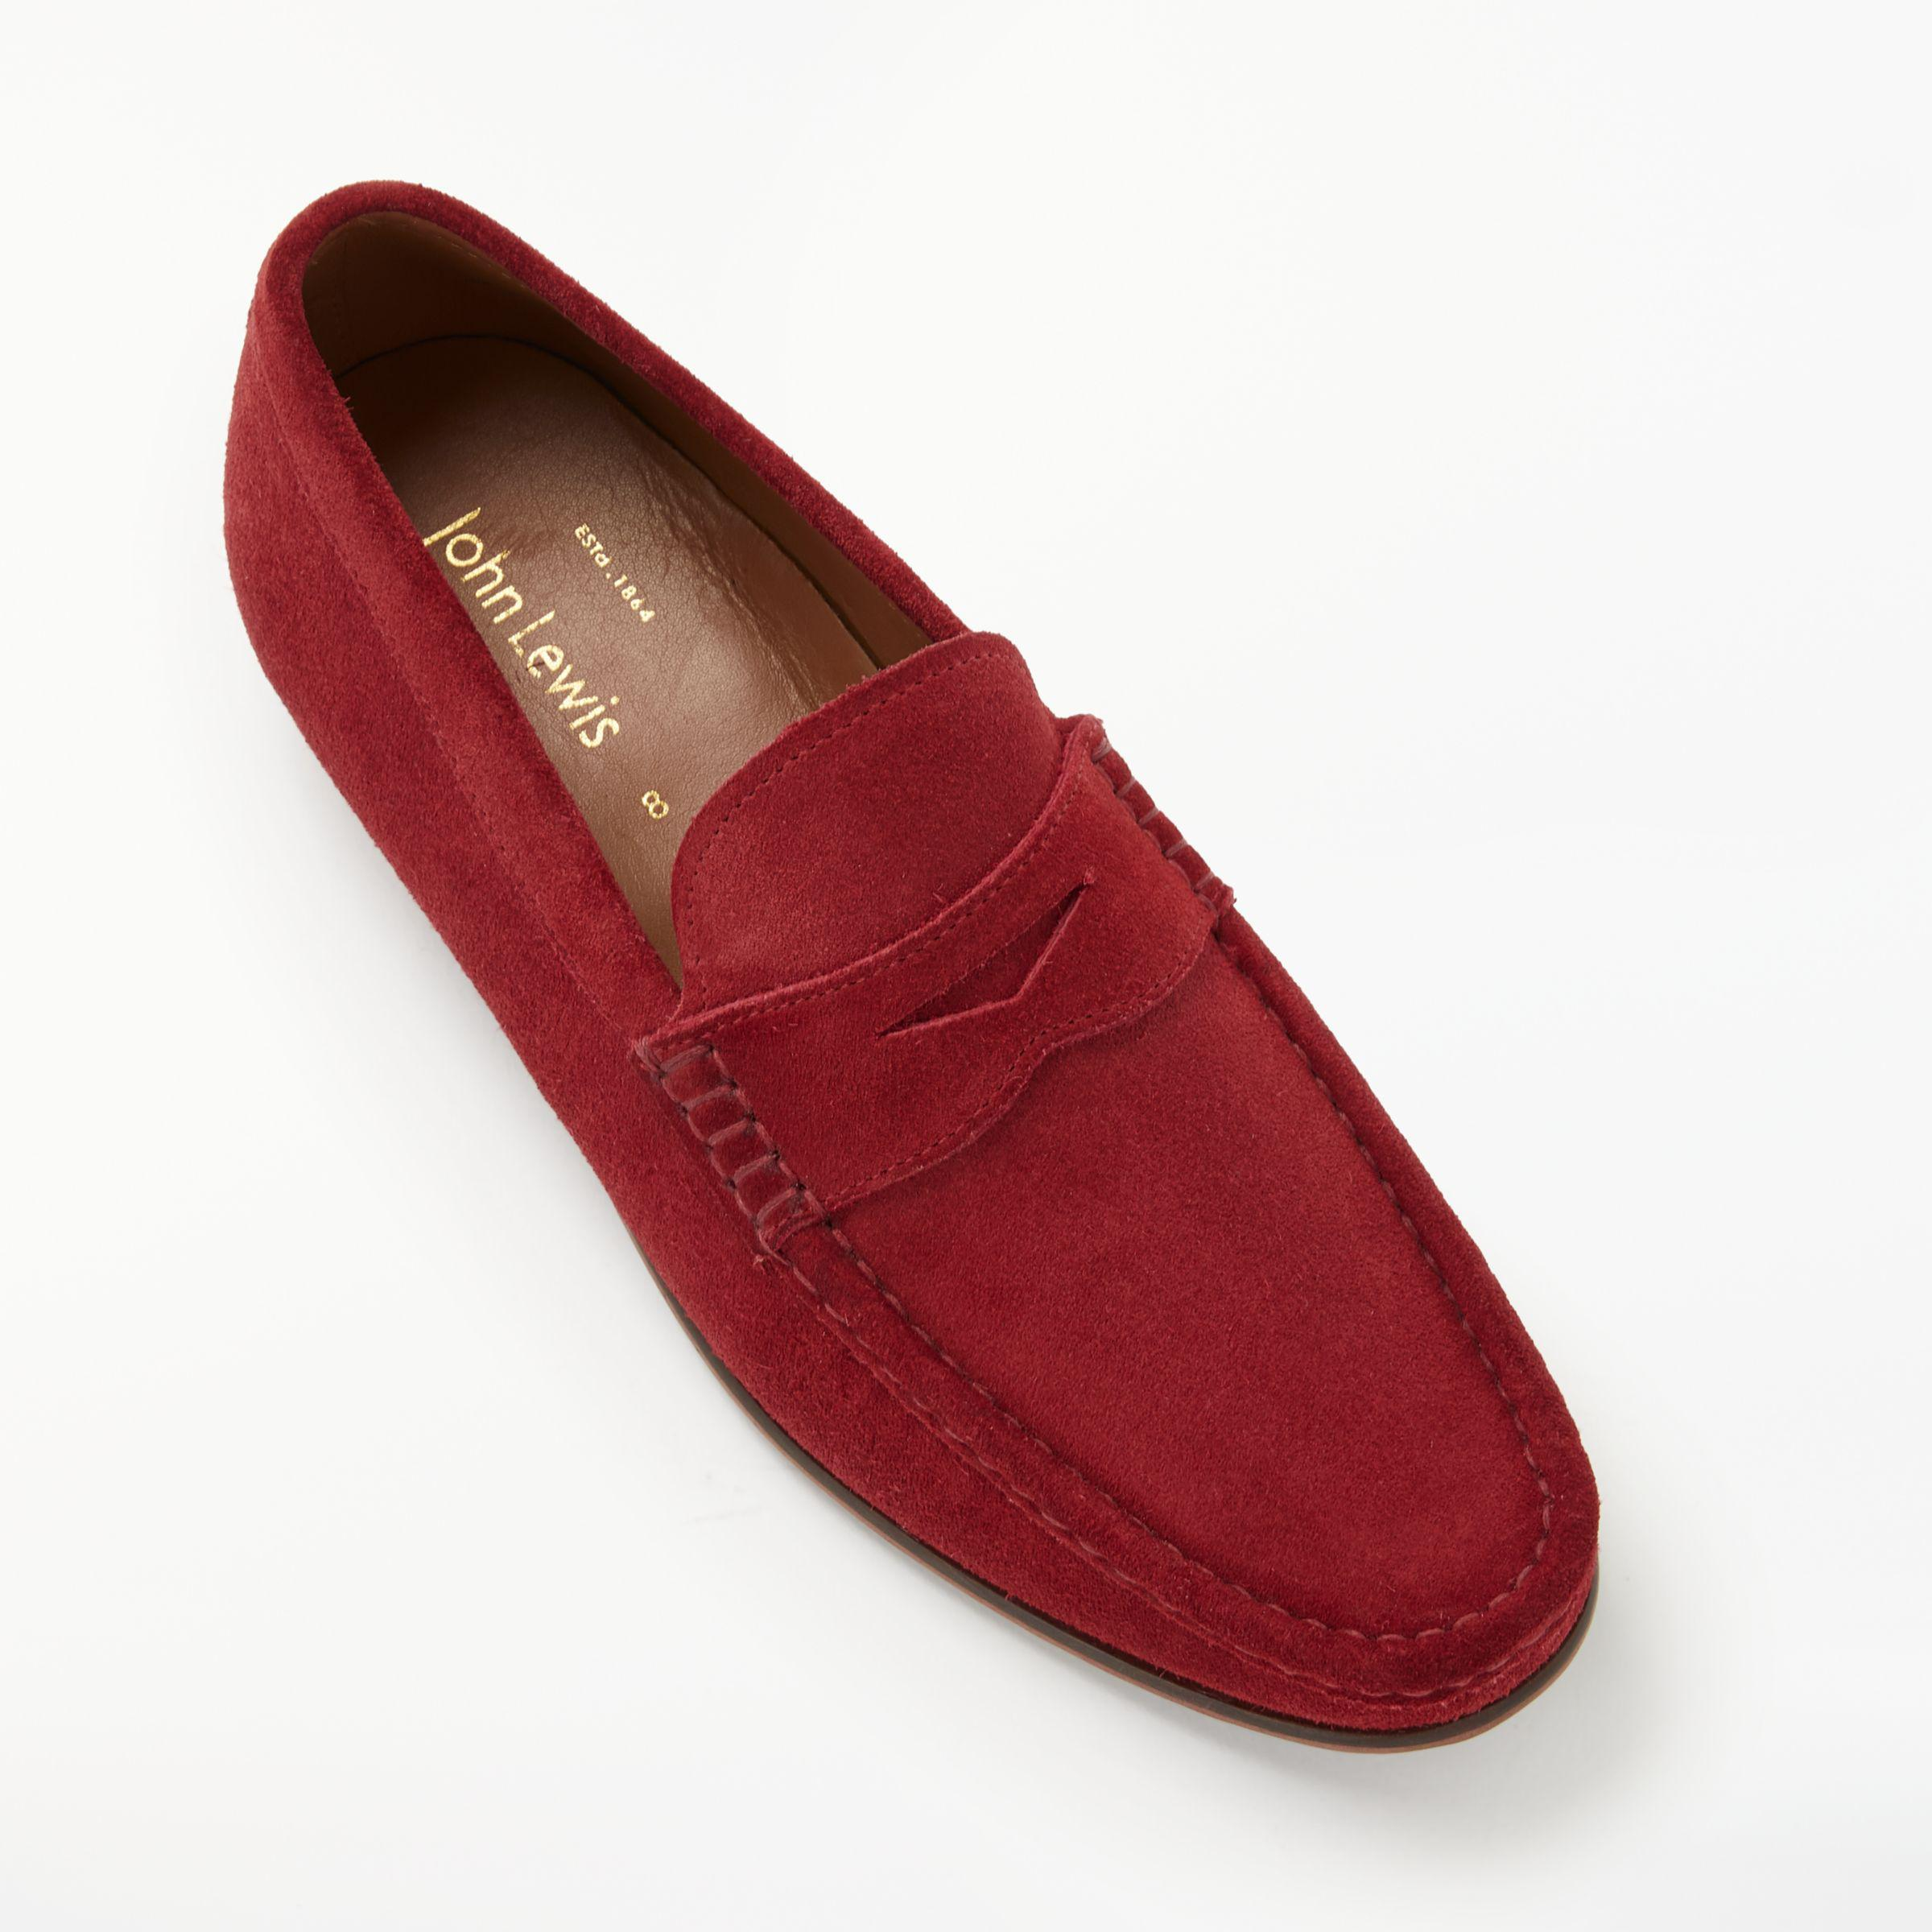 82c107b4039 John Lewis Louis Suede Penny Loafers in Red for Men - Lyst